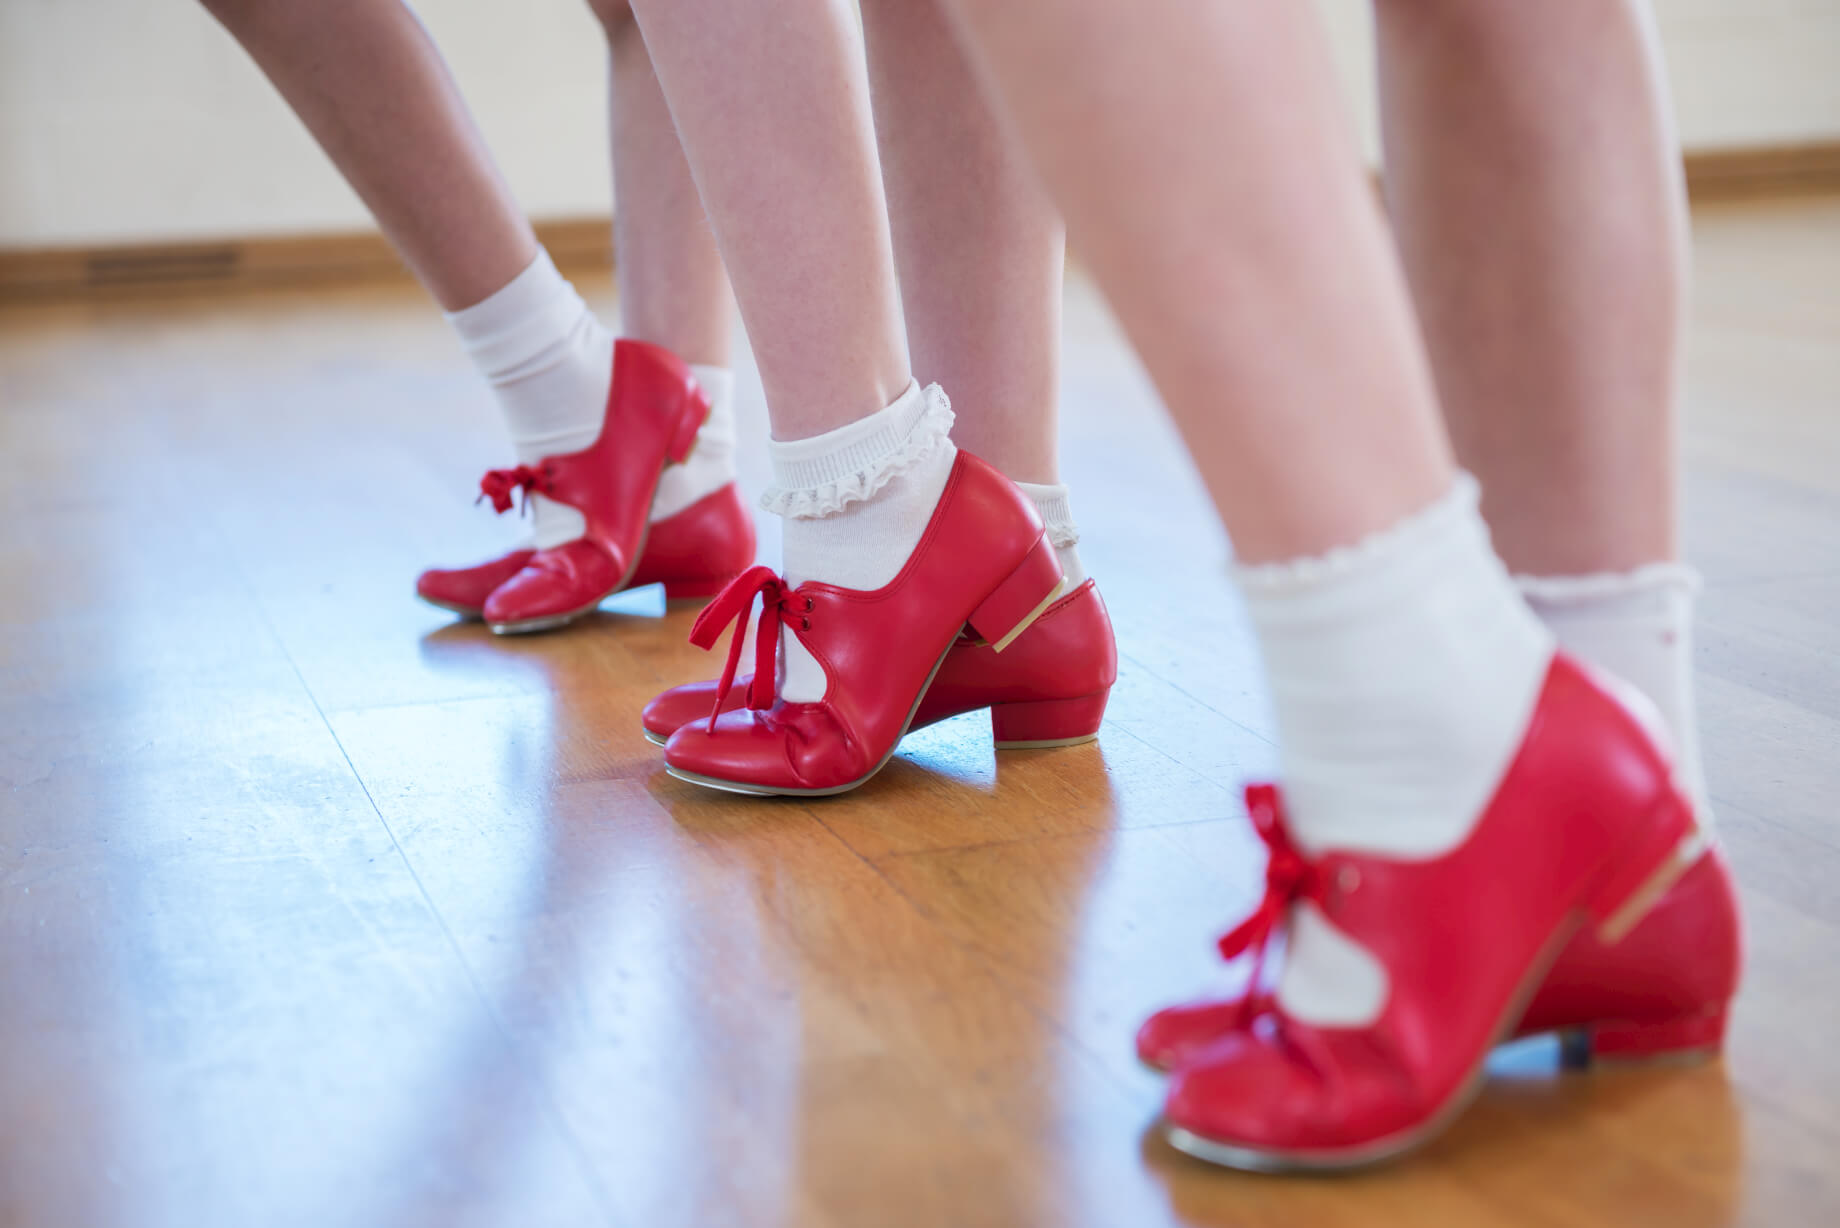 rnsd-tap-shoes-red-white-socks-class-school-rutleigh-norris.jpg